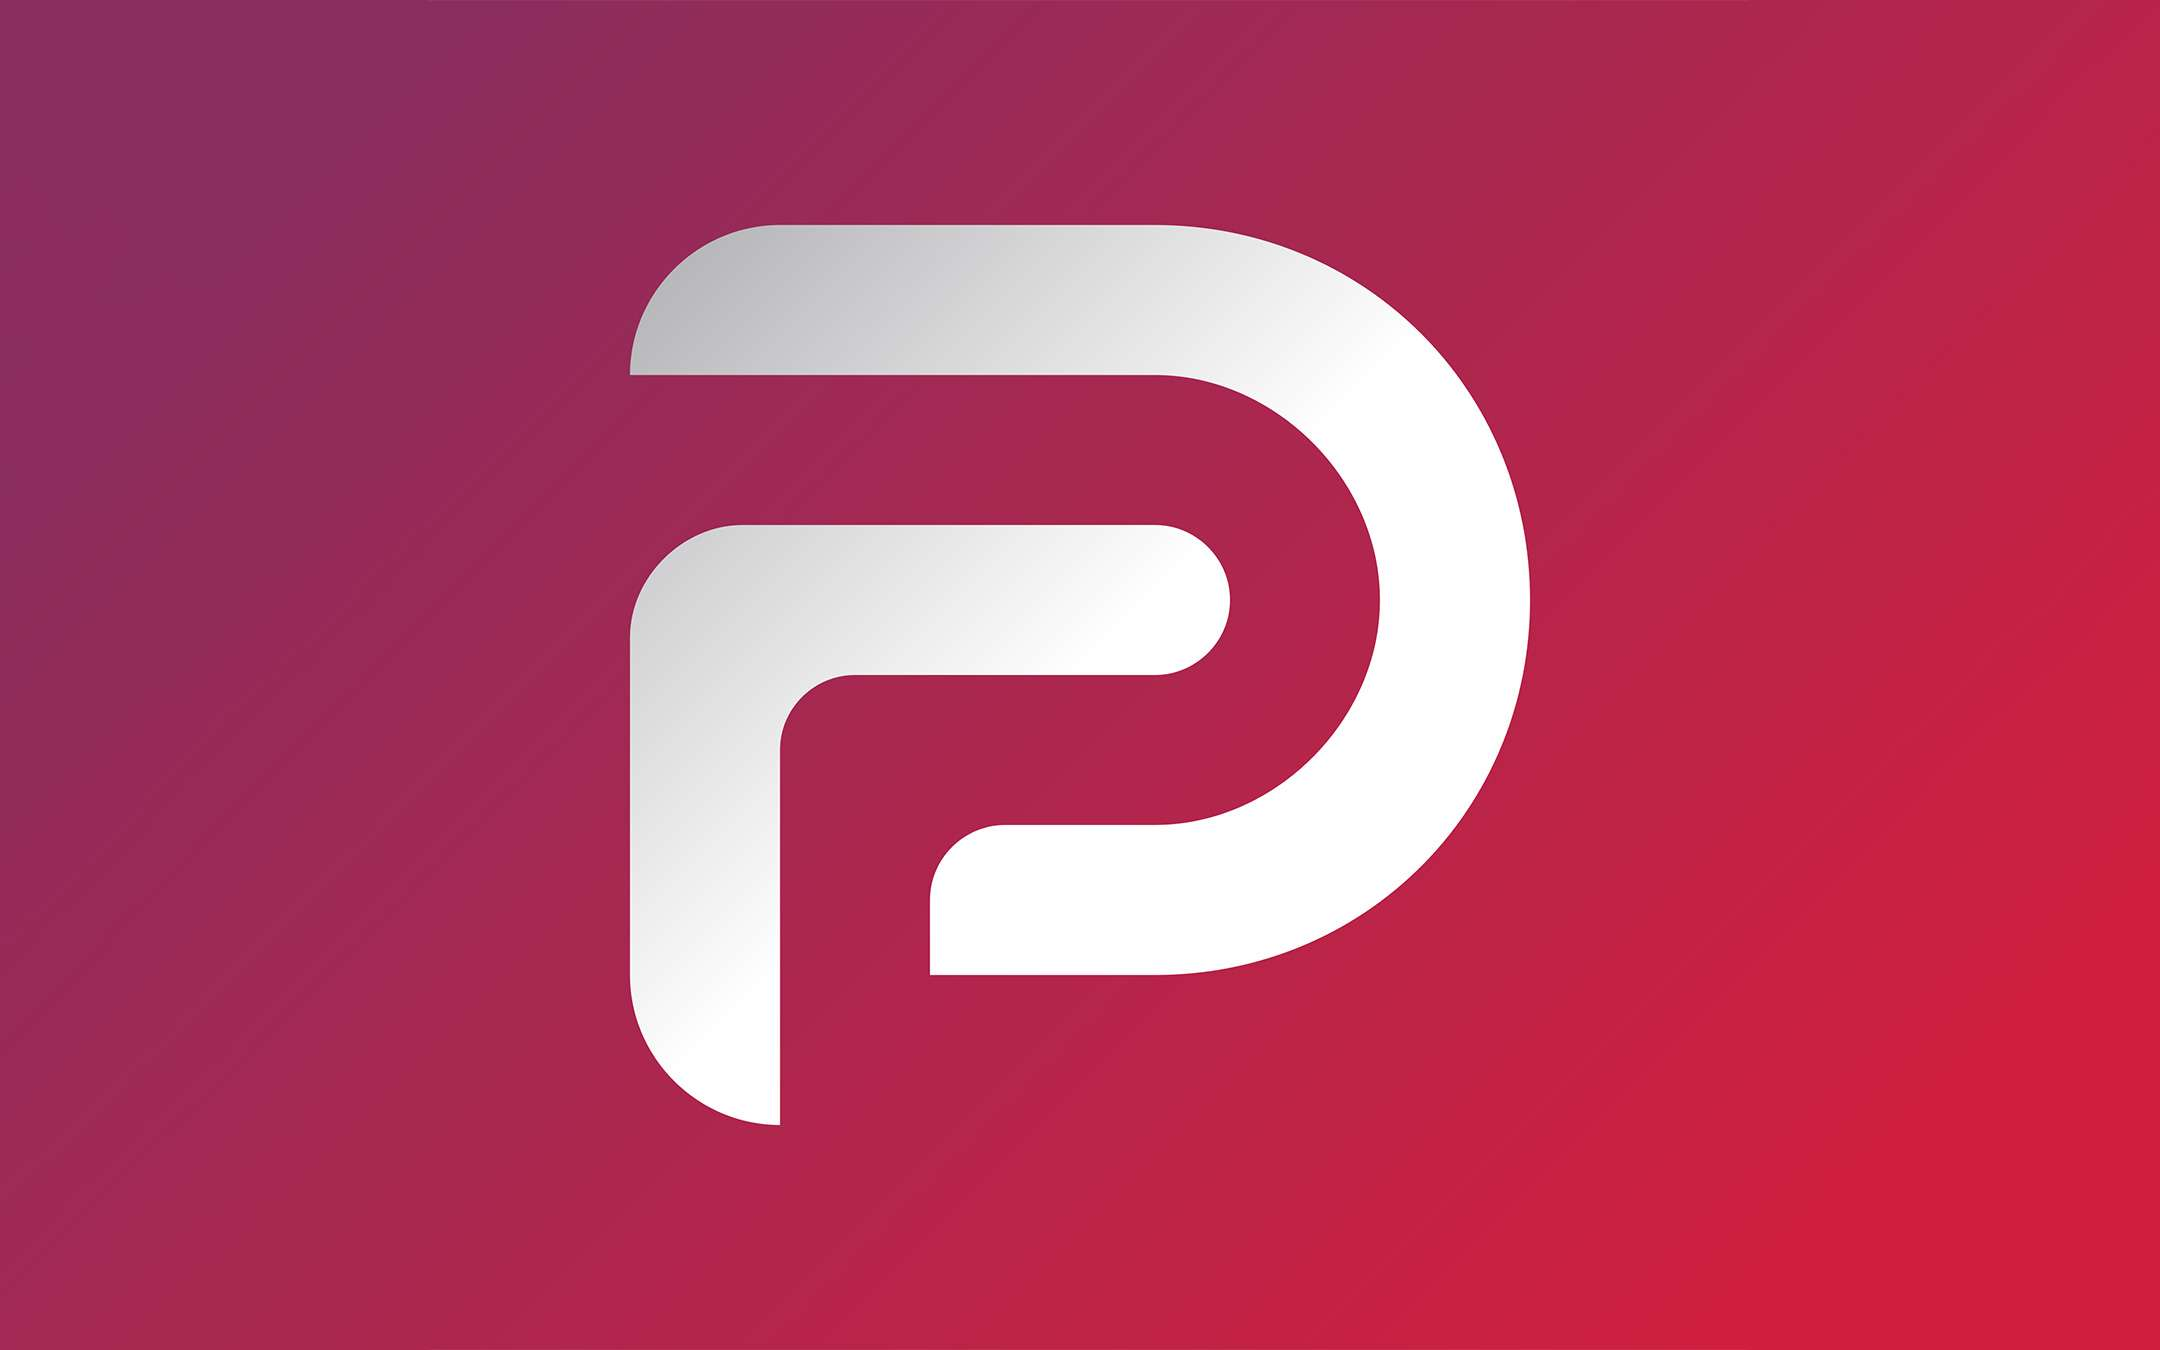 Parler is back, on Epik servers (Gab and 8chan)